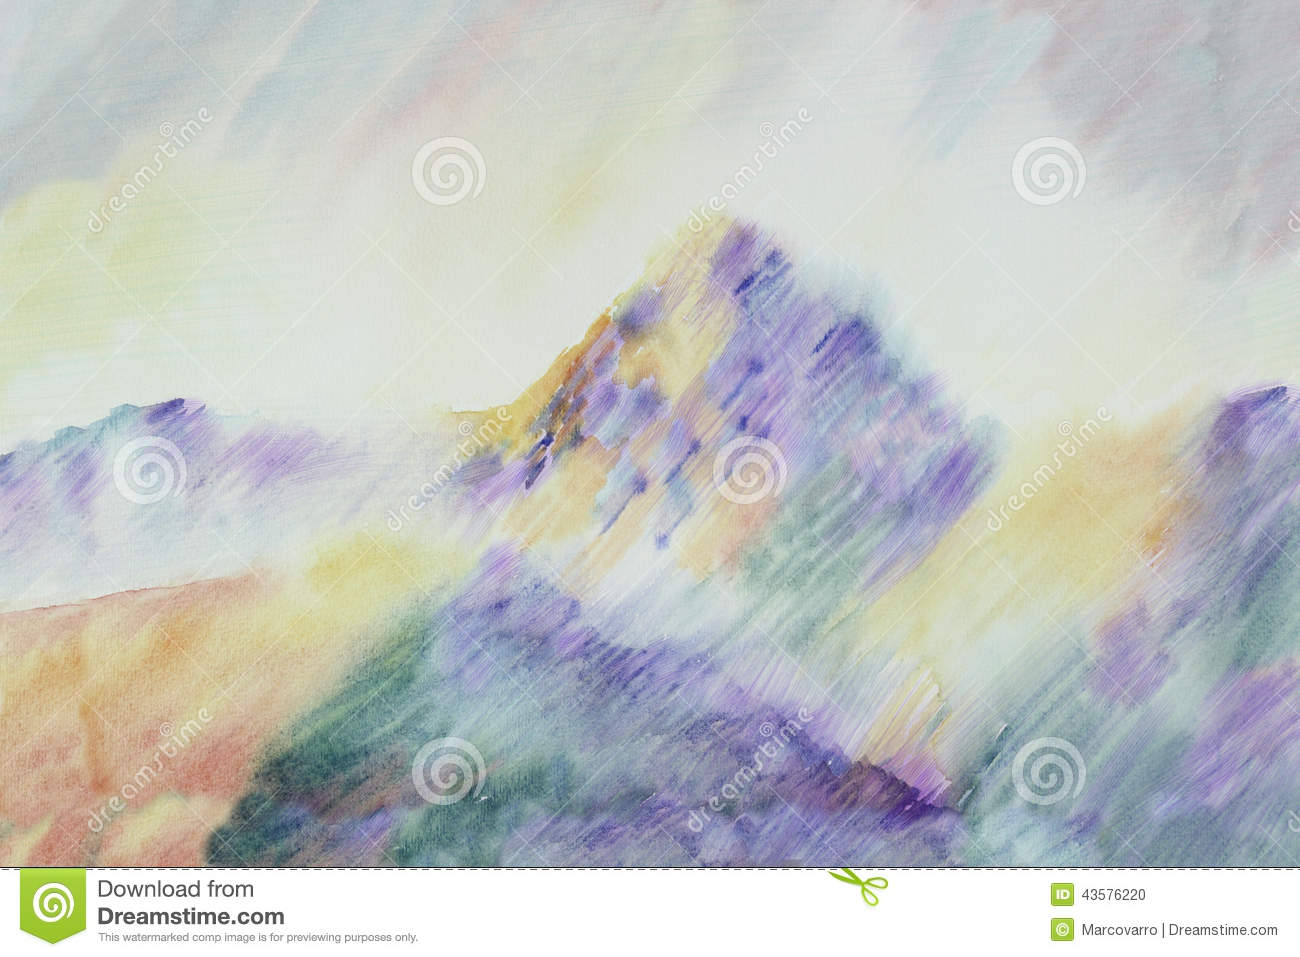 Cezanne like Mountain